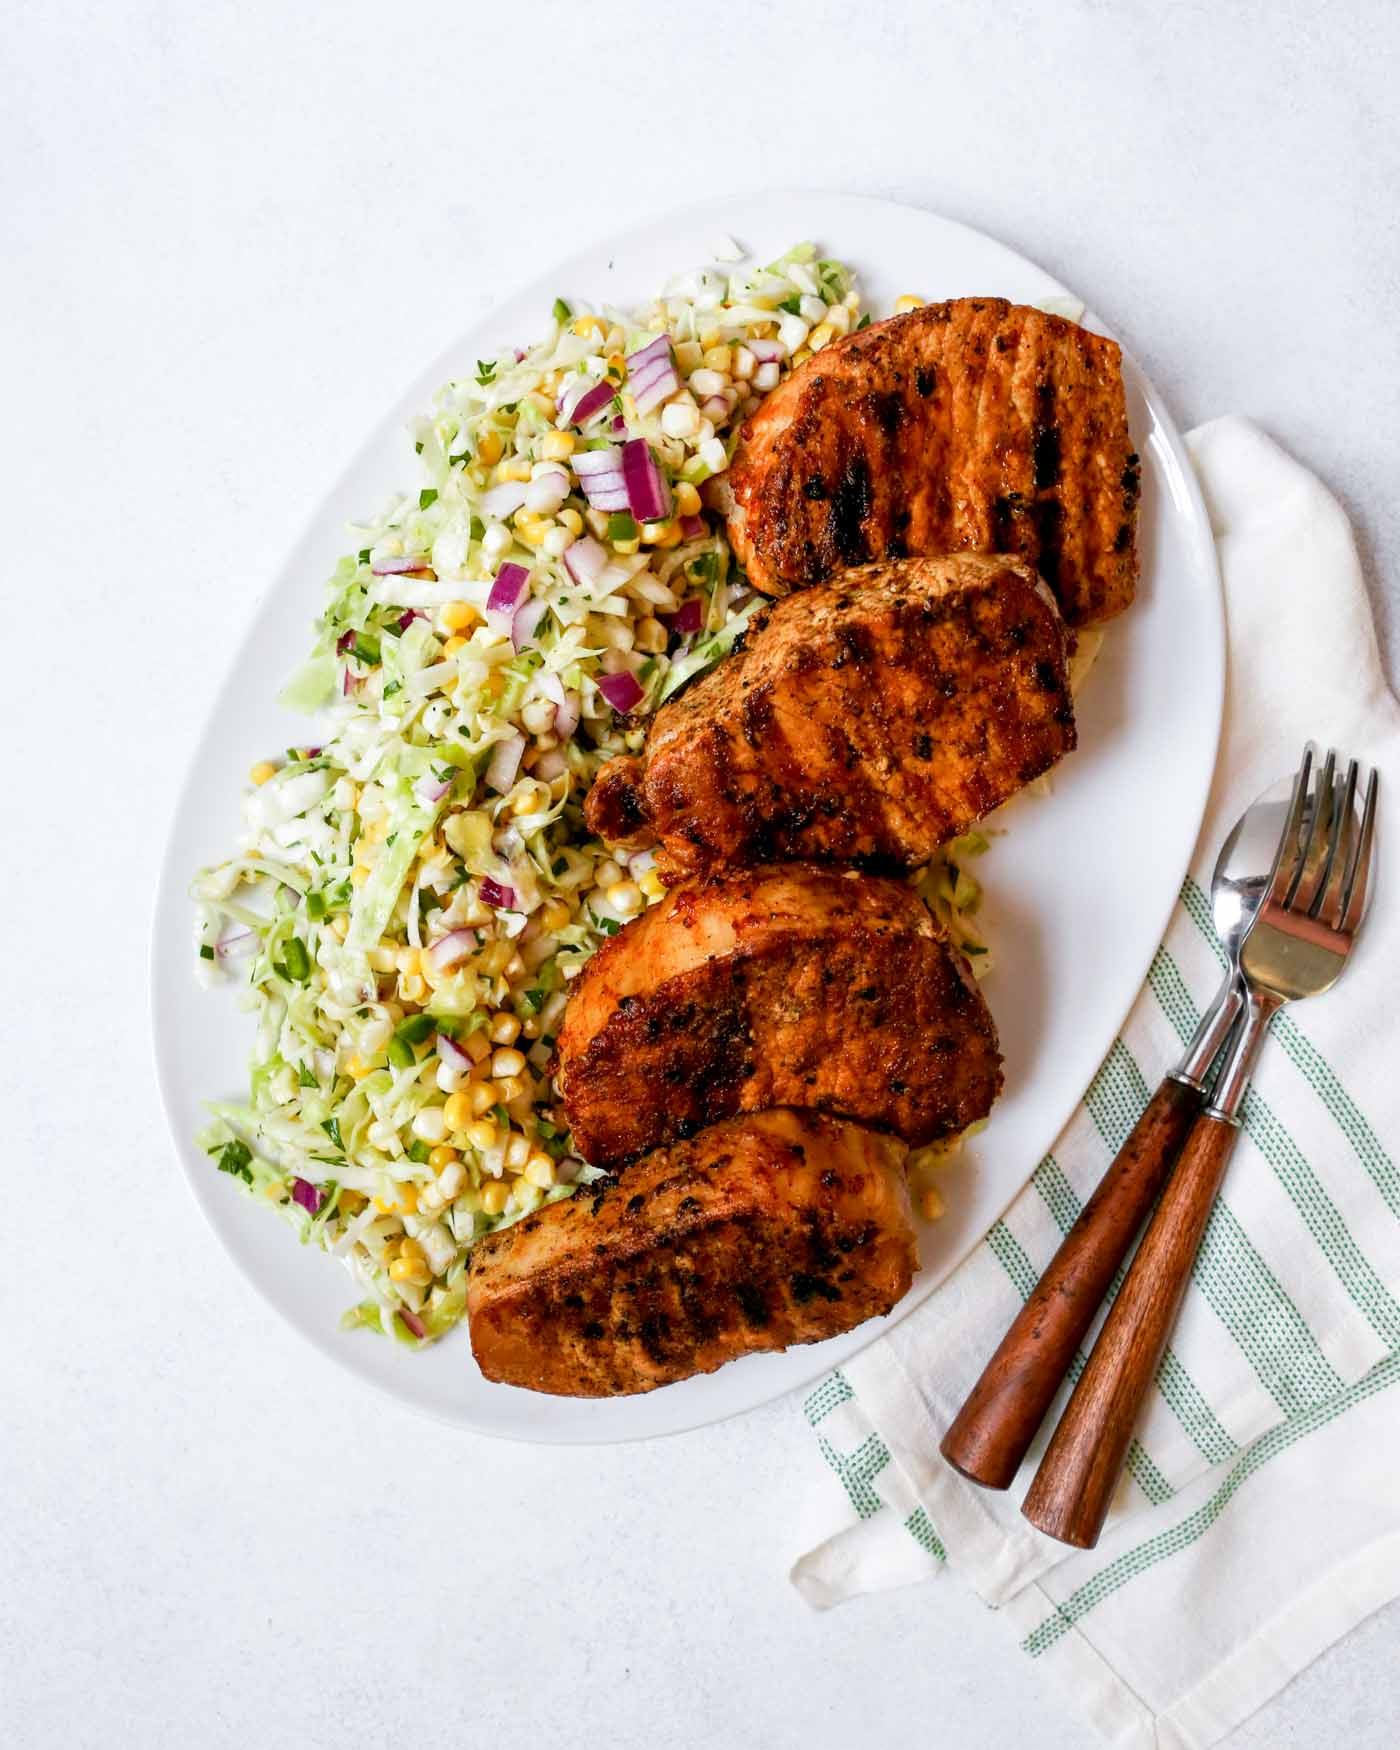 Photograph of grilled boneless pork chops on a white platter with sweet corn slaw.